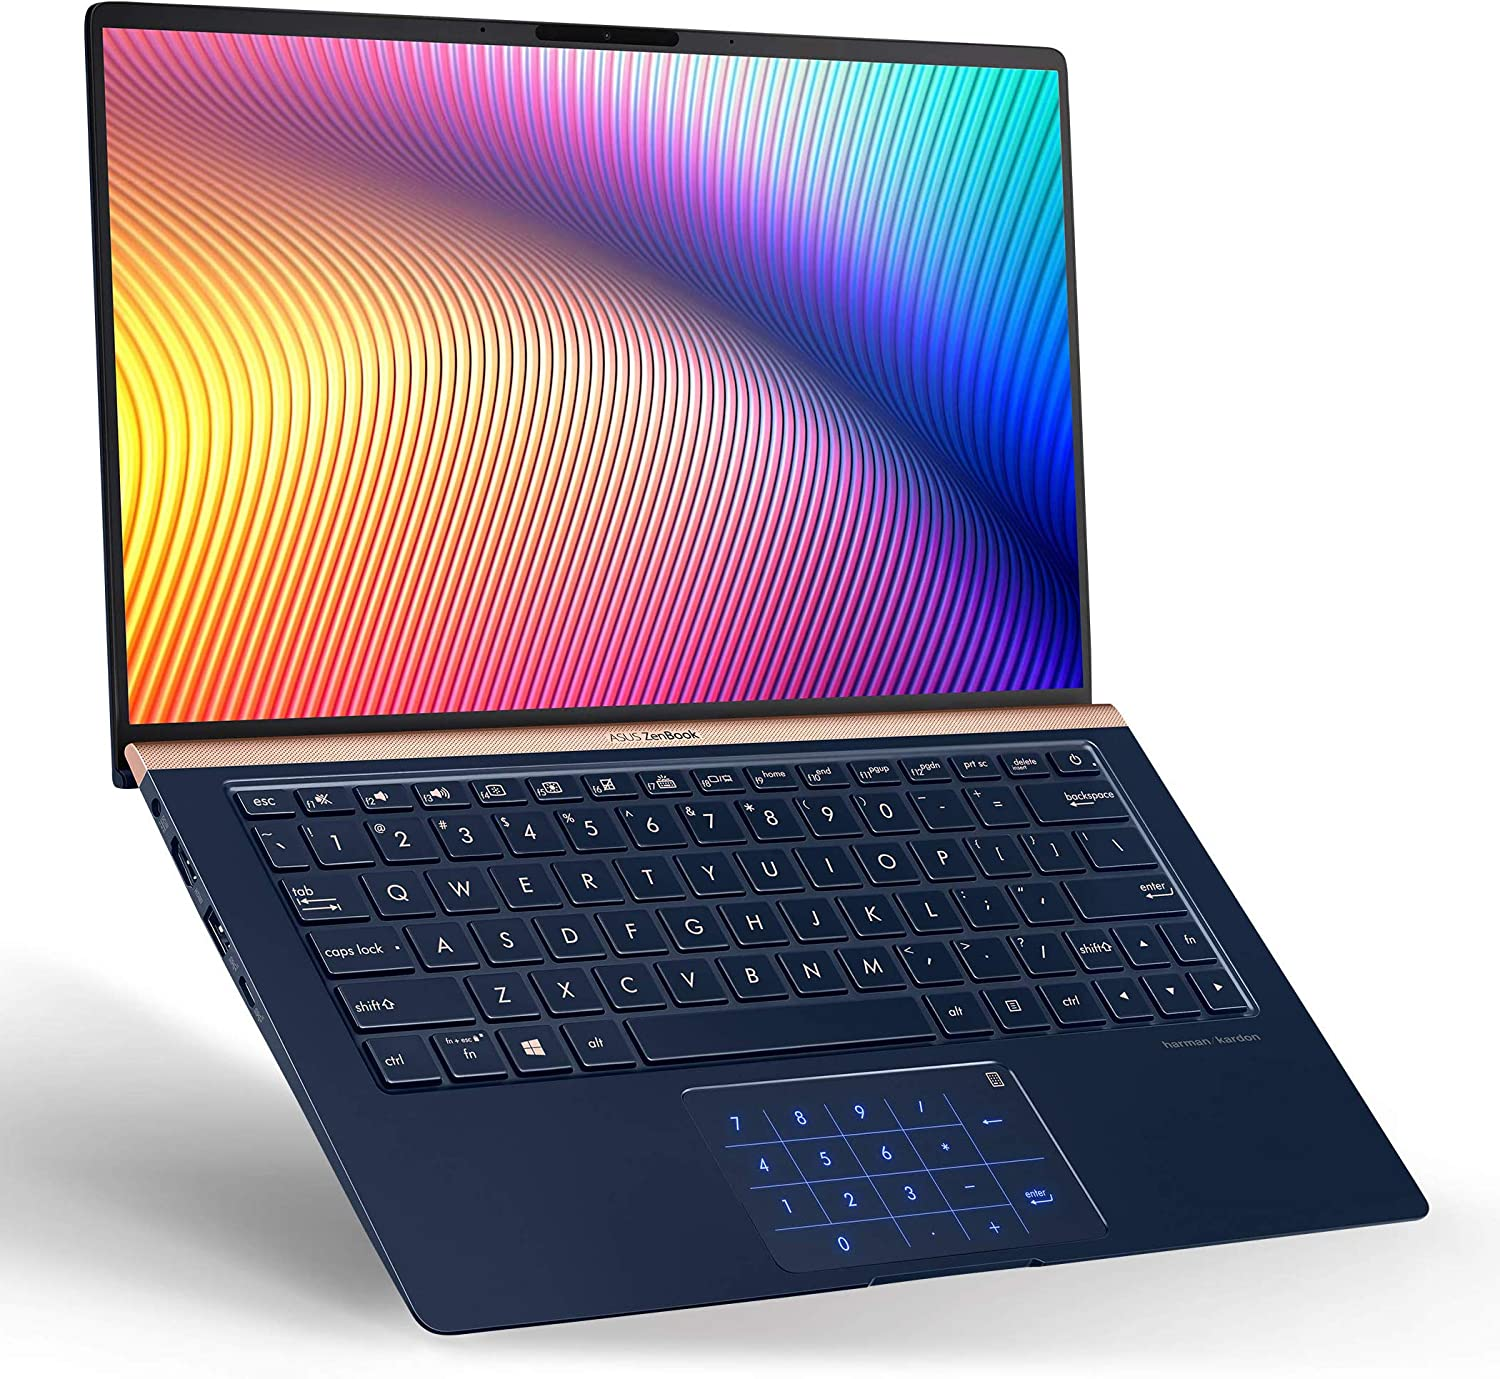 81sGUQYOnML. AC SL1500 Best Laptops for Engineering Students on a Budget 2021